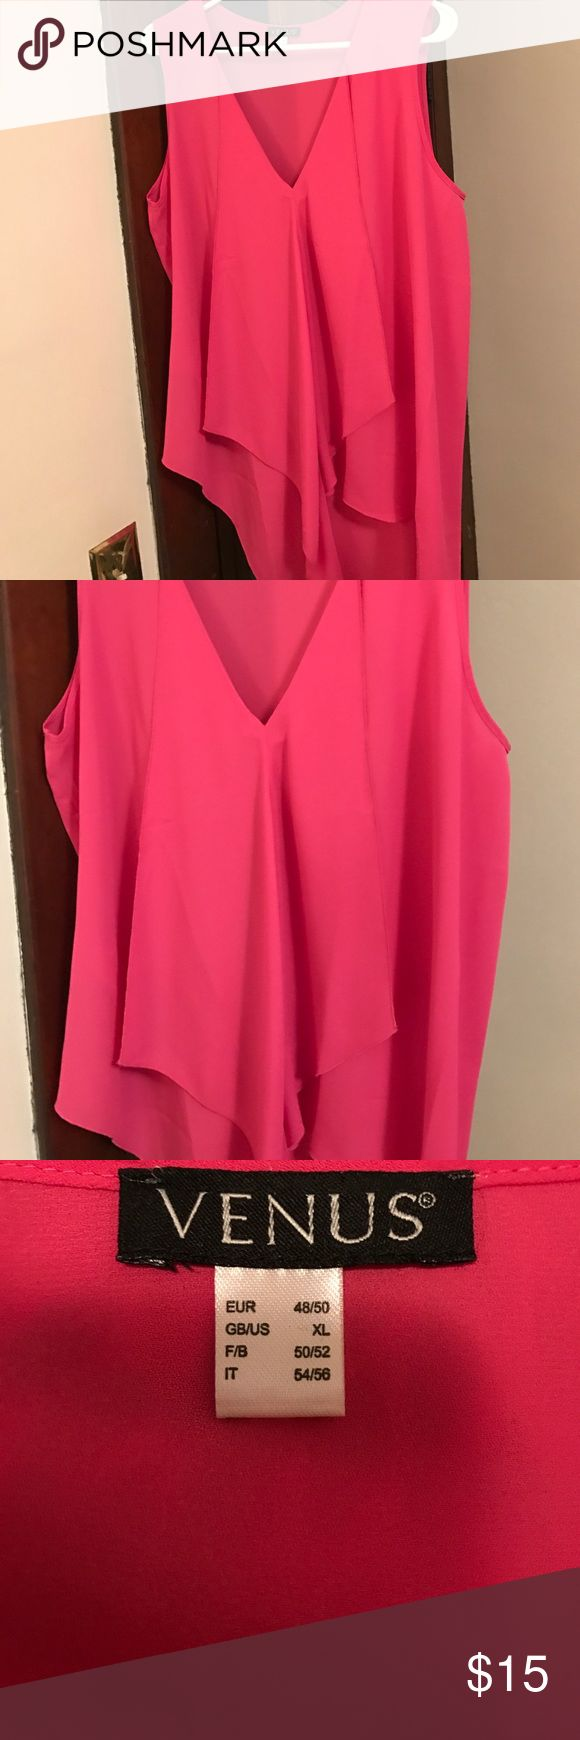 Pink sleeveless ruffle front blouse Never been worn. Bright pink, v-neck, sleeveless blouse. Draping/layers on front. Kind of an asymmetrical hem. It is so pretty and flowy- would look great with skinny jeans or leggings and heels, with a jacket, or tucked into a skirt. Size XL- from Venus. venus Tops Blouses